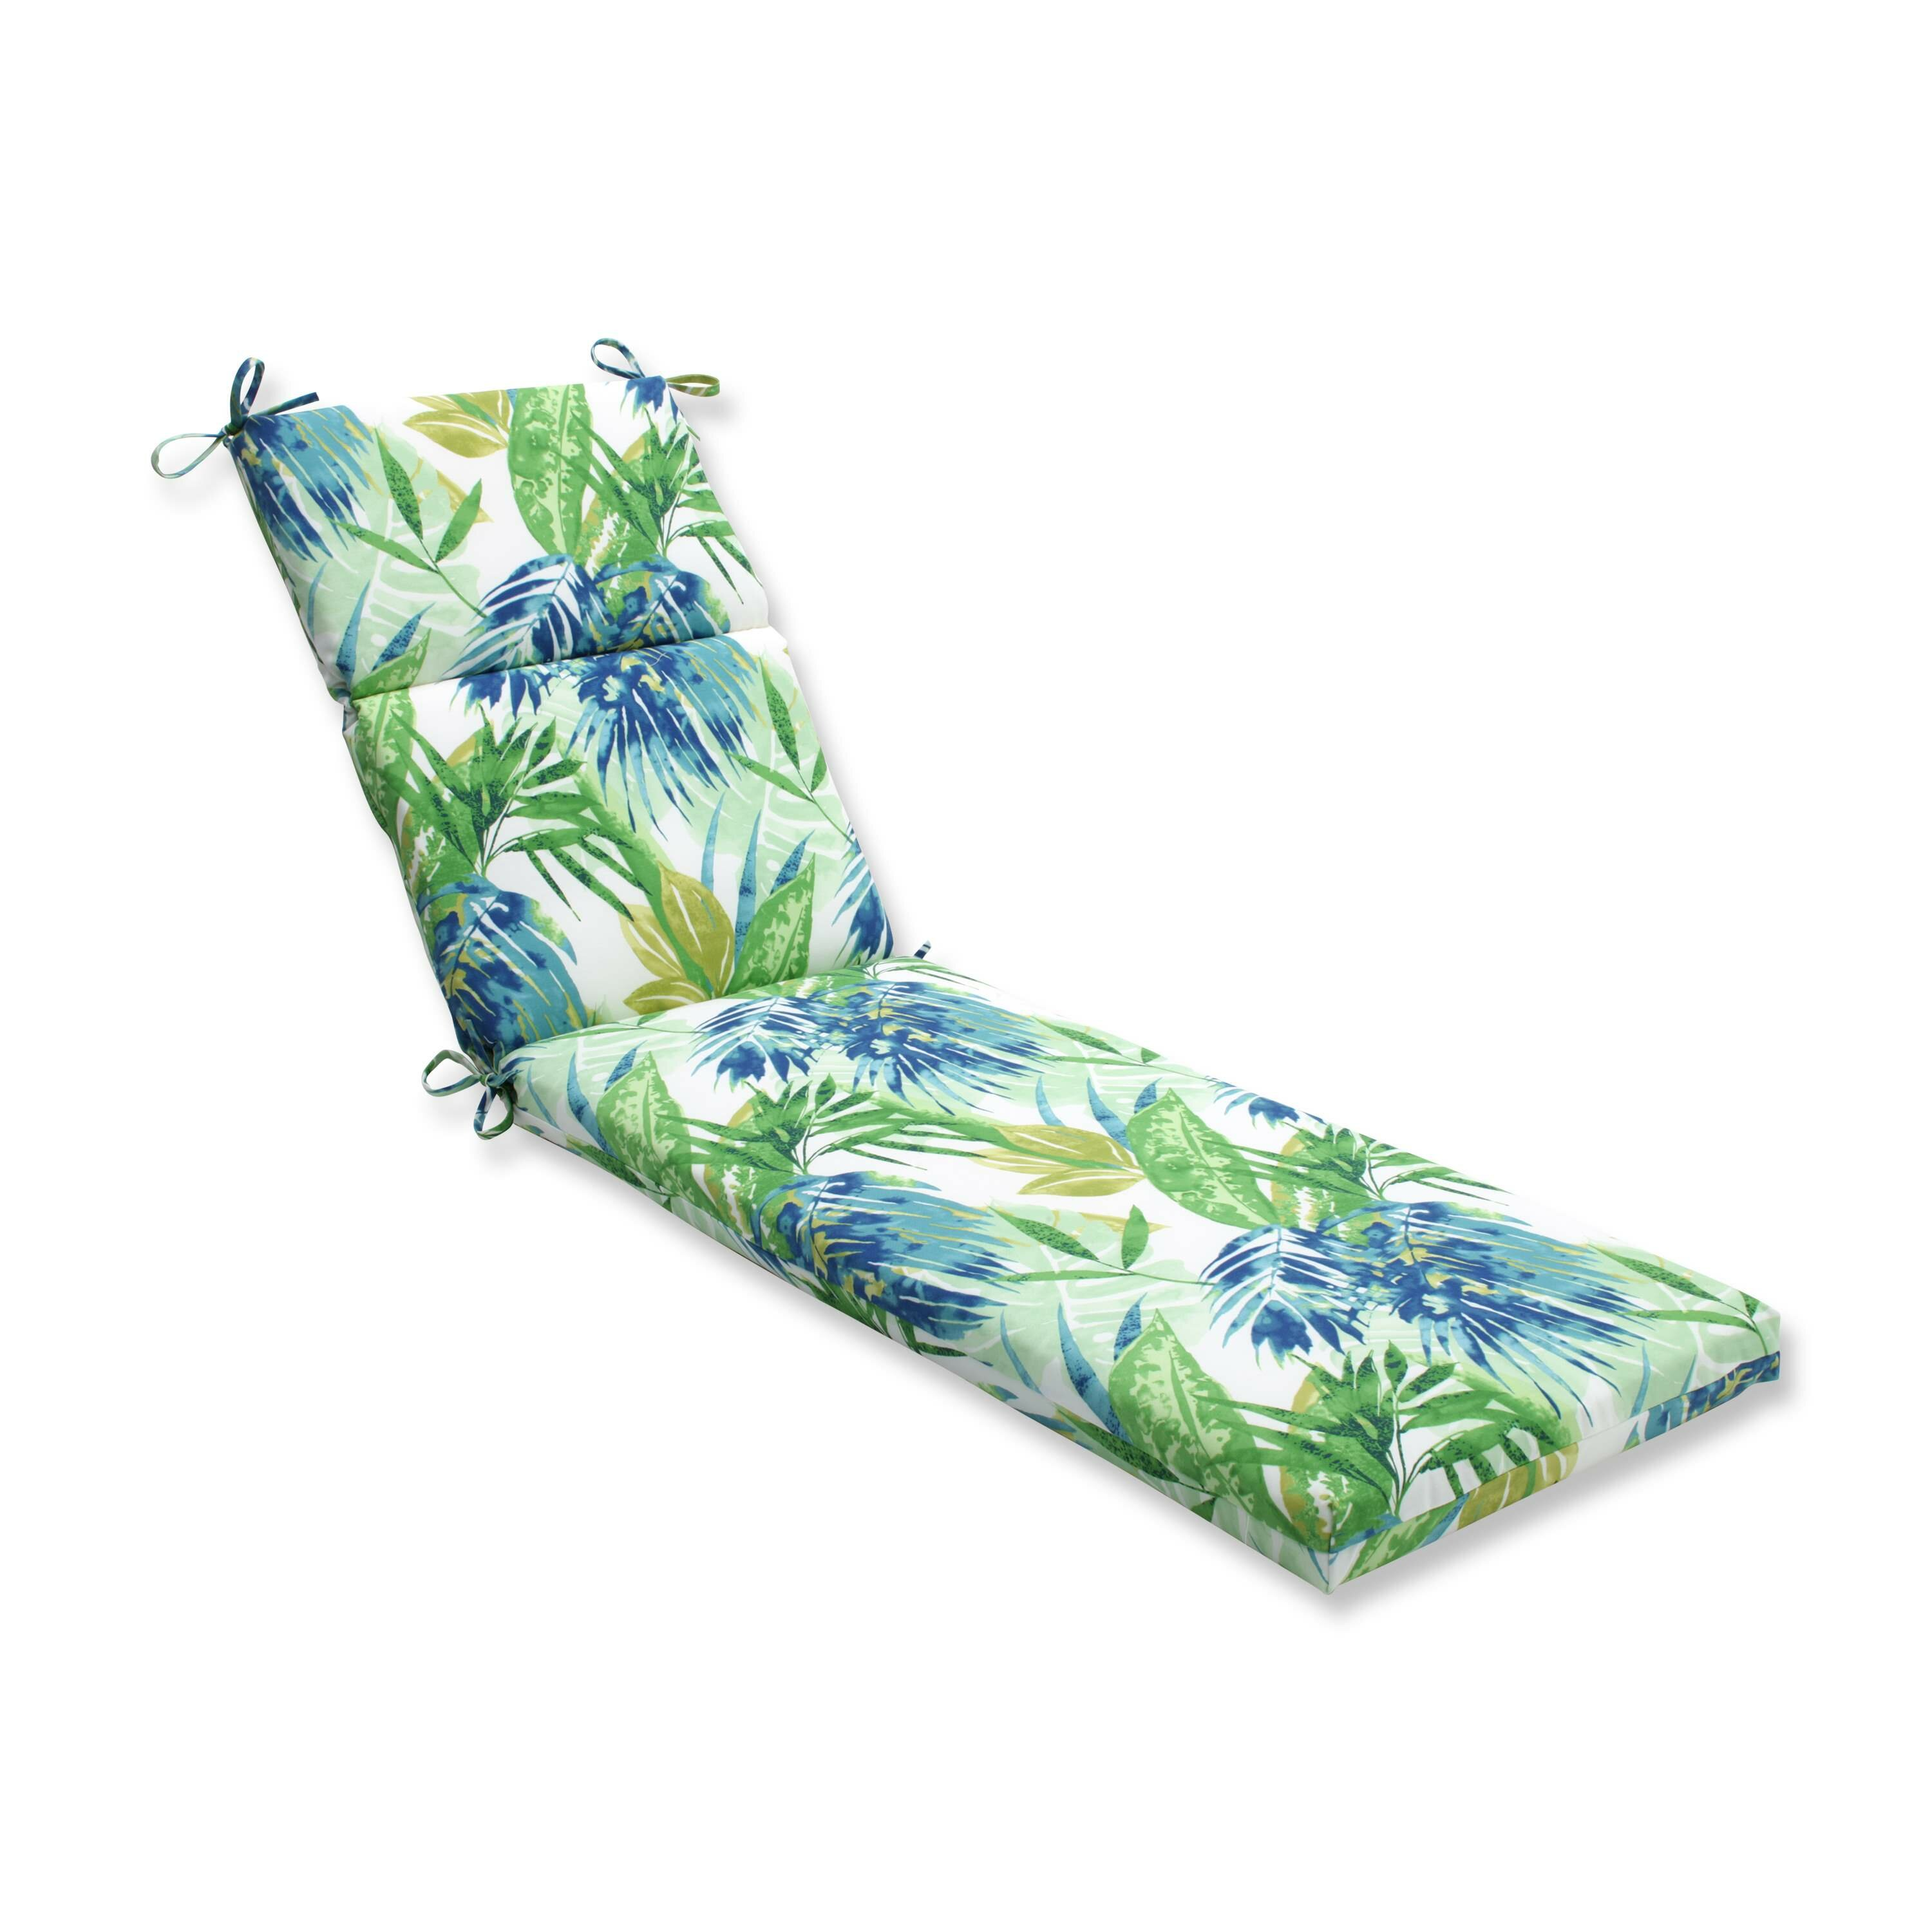 Pillow perfect soleil outdoor chaise lounge cushion for Chaise cushions outdoor